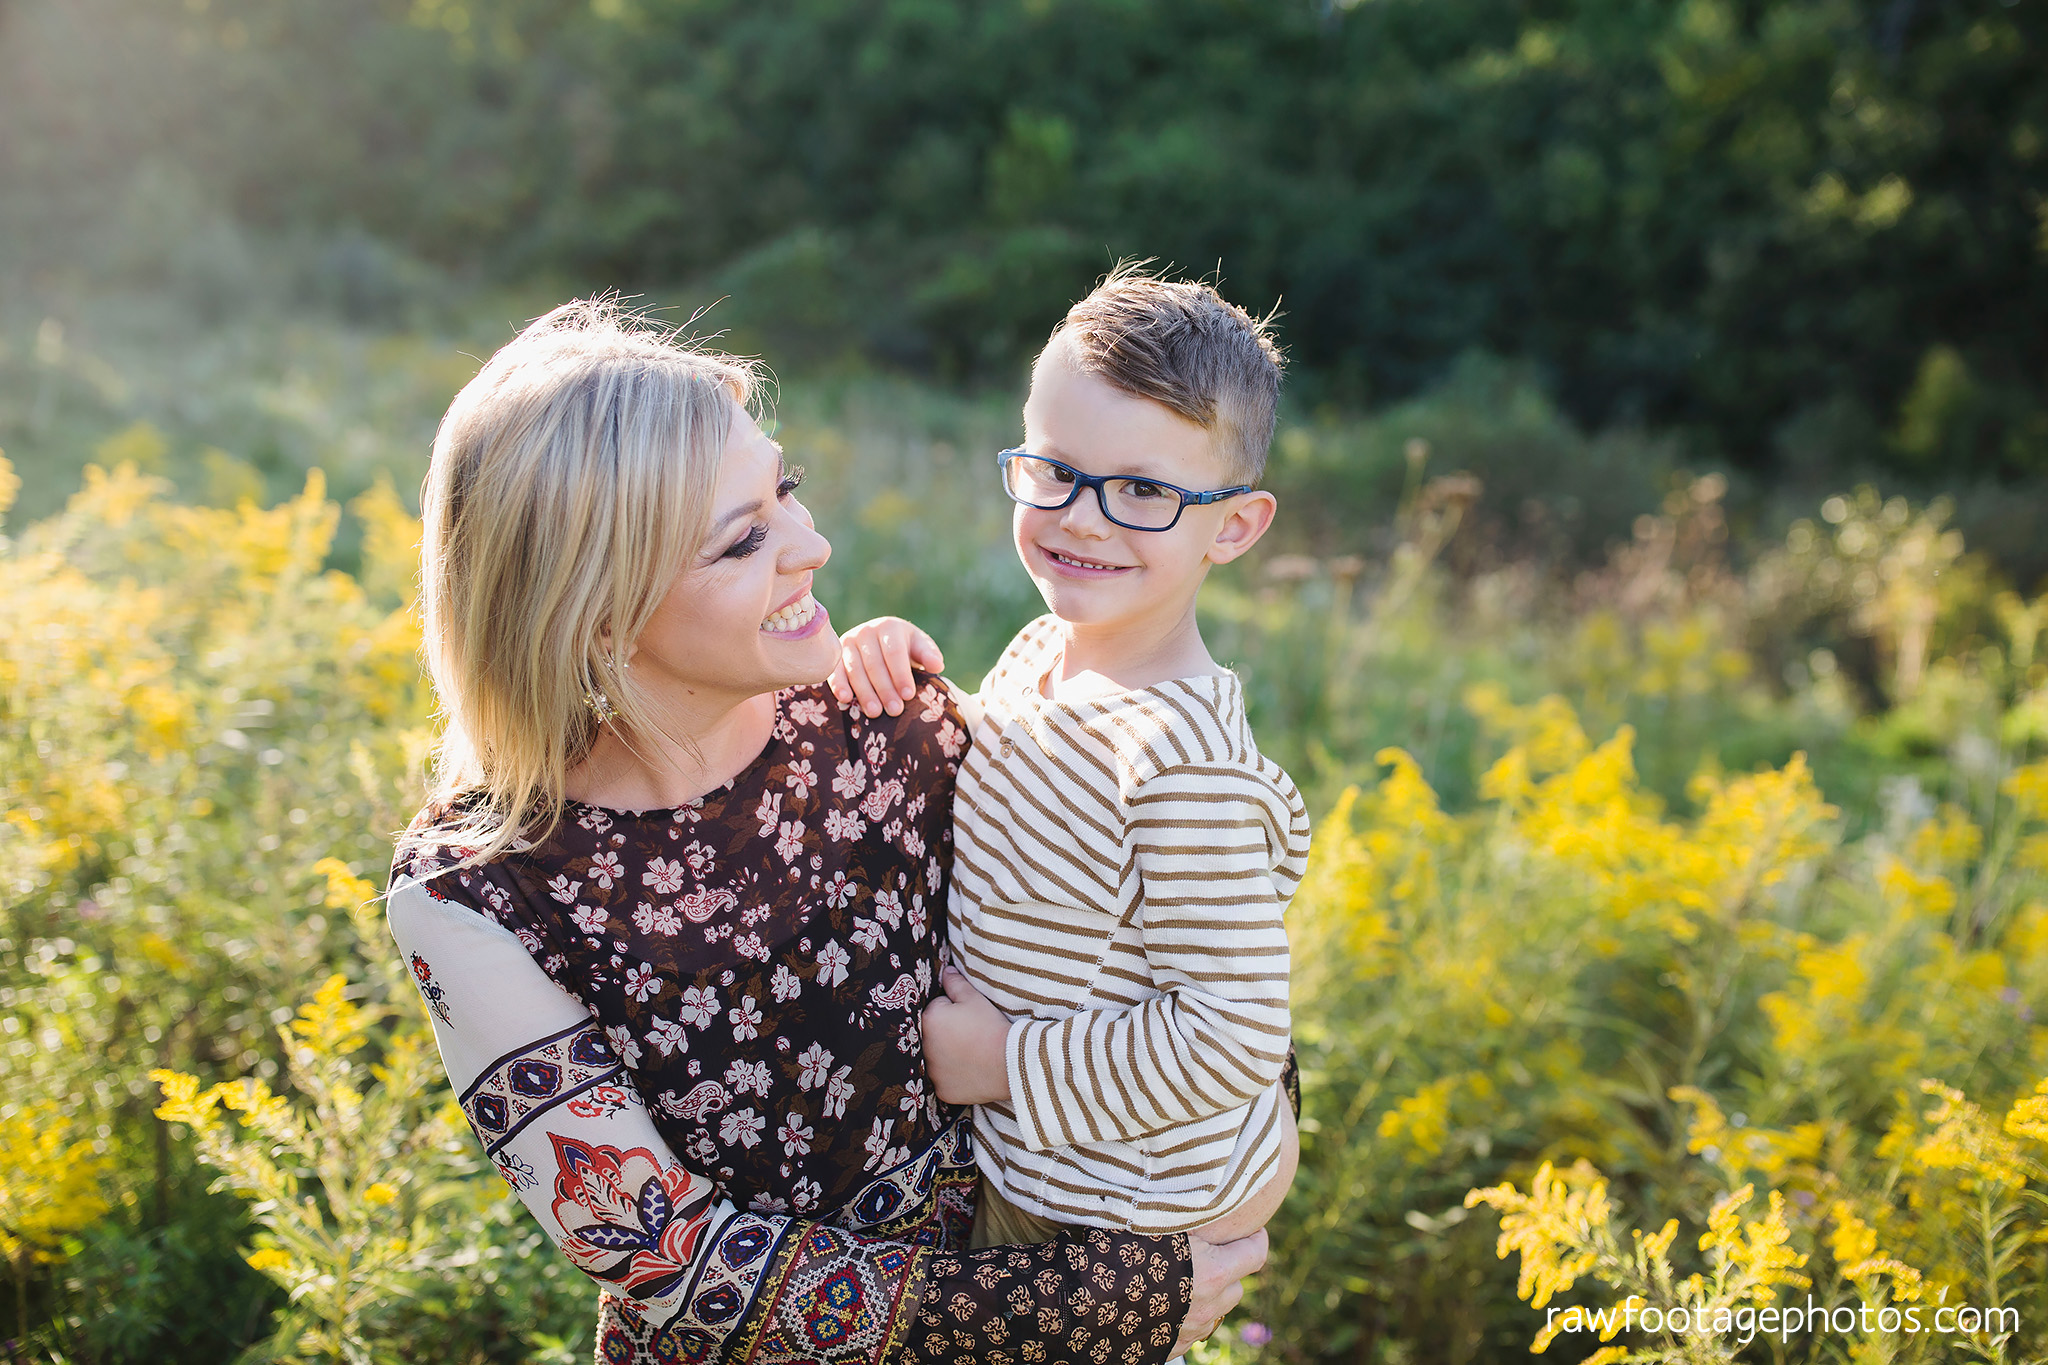 London_Ontario_Family_photographer-Fall_Minis-Woods-Forest-Nature-Candid-Lifestyle-Raw_Footage_Photography037.jpg